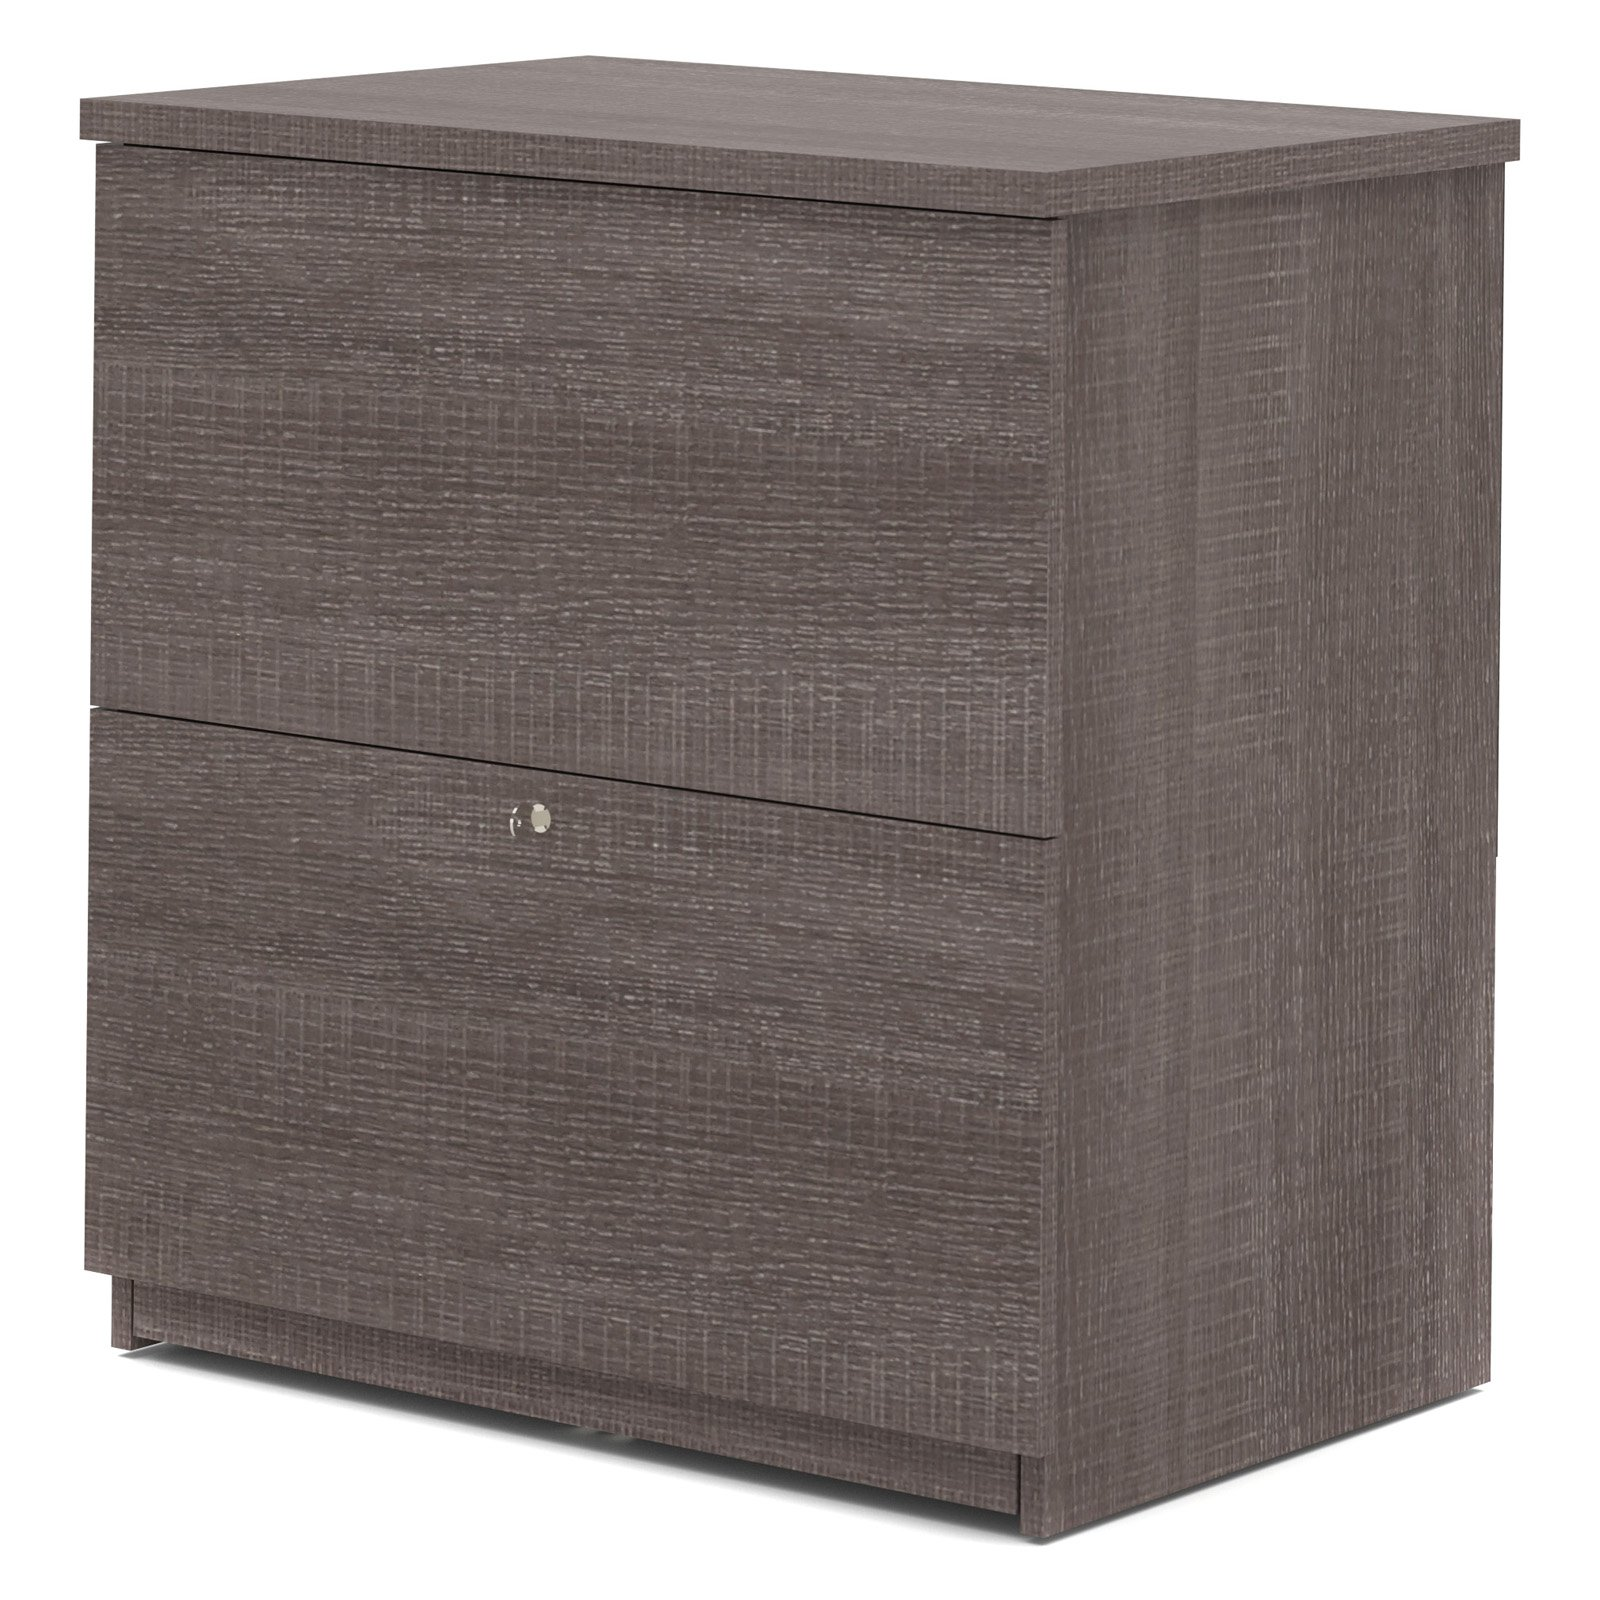 Bestar 2 Drawer Lateral Wood Lockable FileCabinet, Gray by Bestar